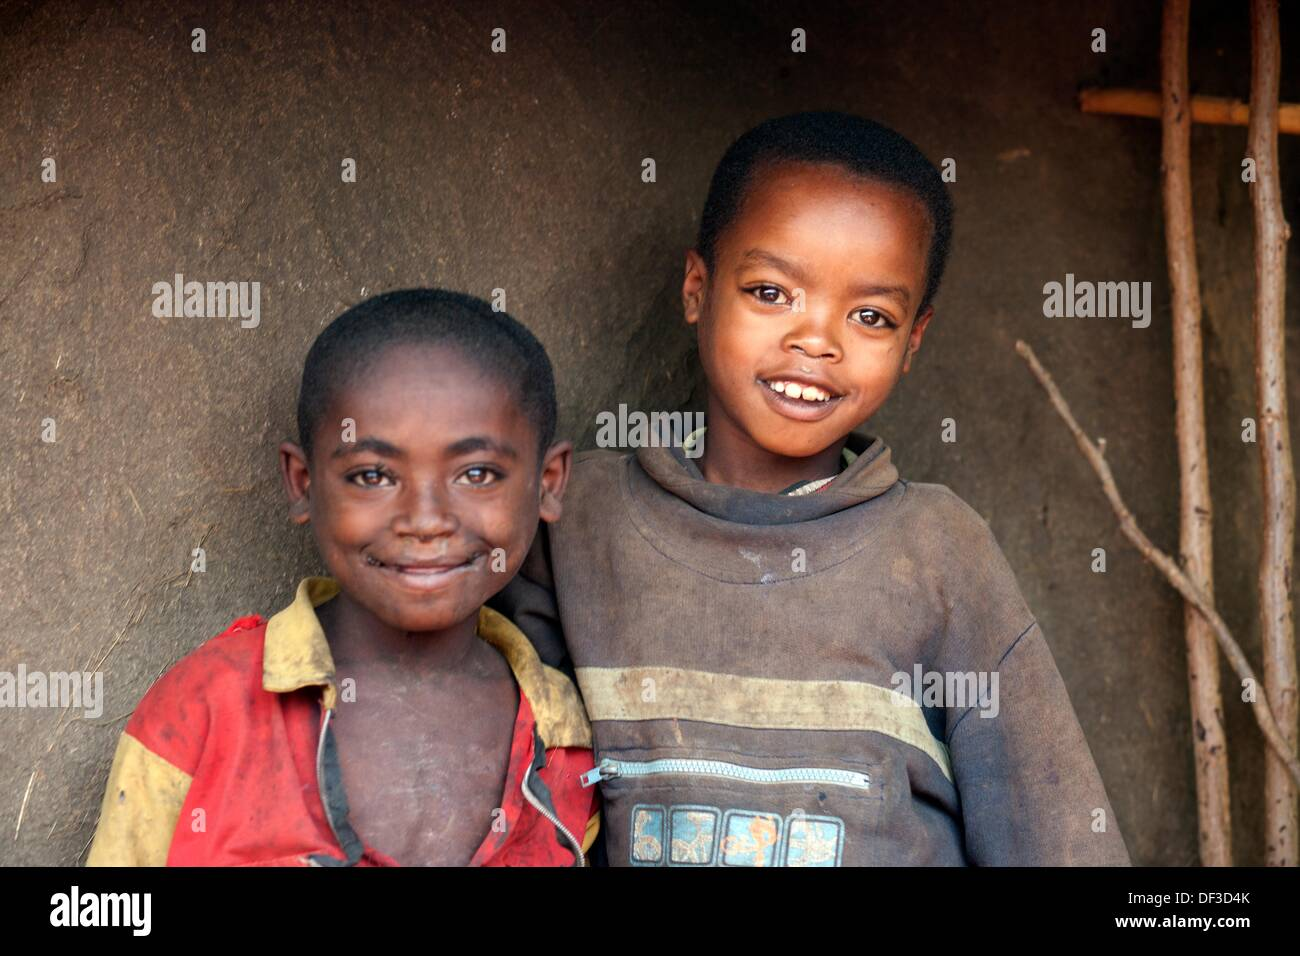 Half body shoot of two young boys from the Bench tribe, Ethiopia, East Africa. - Stock Image